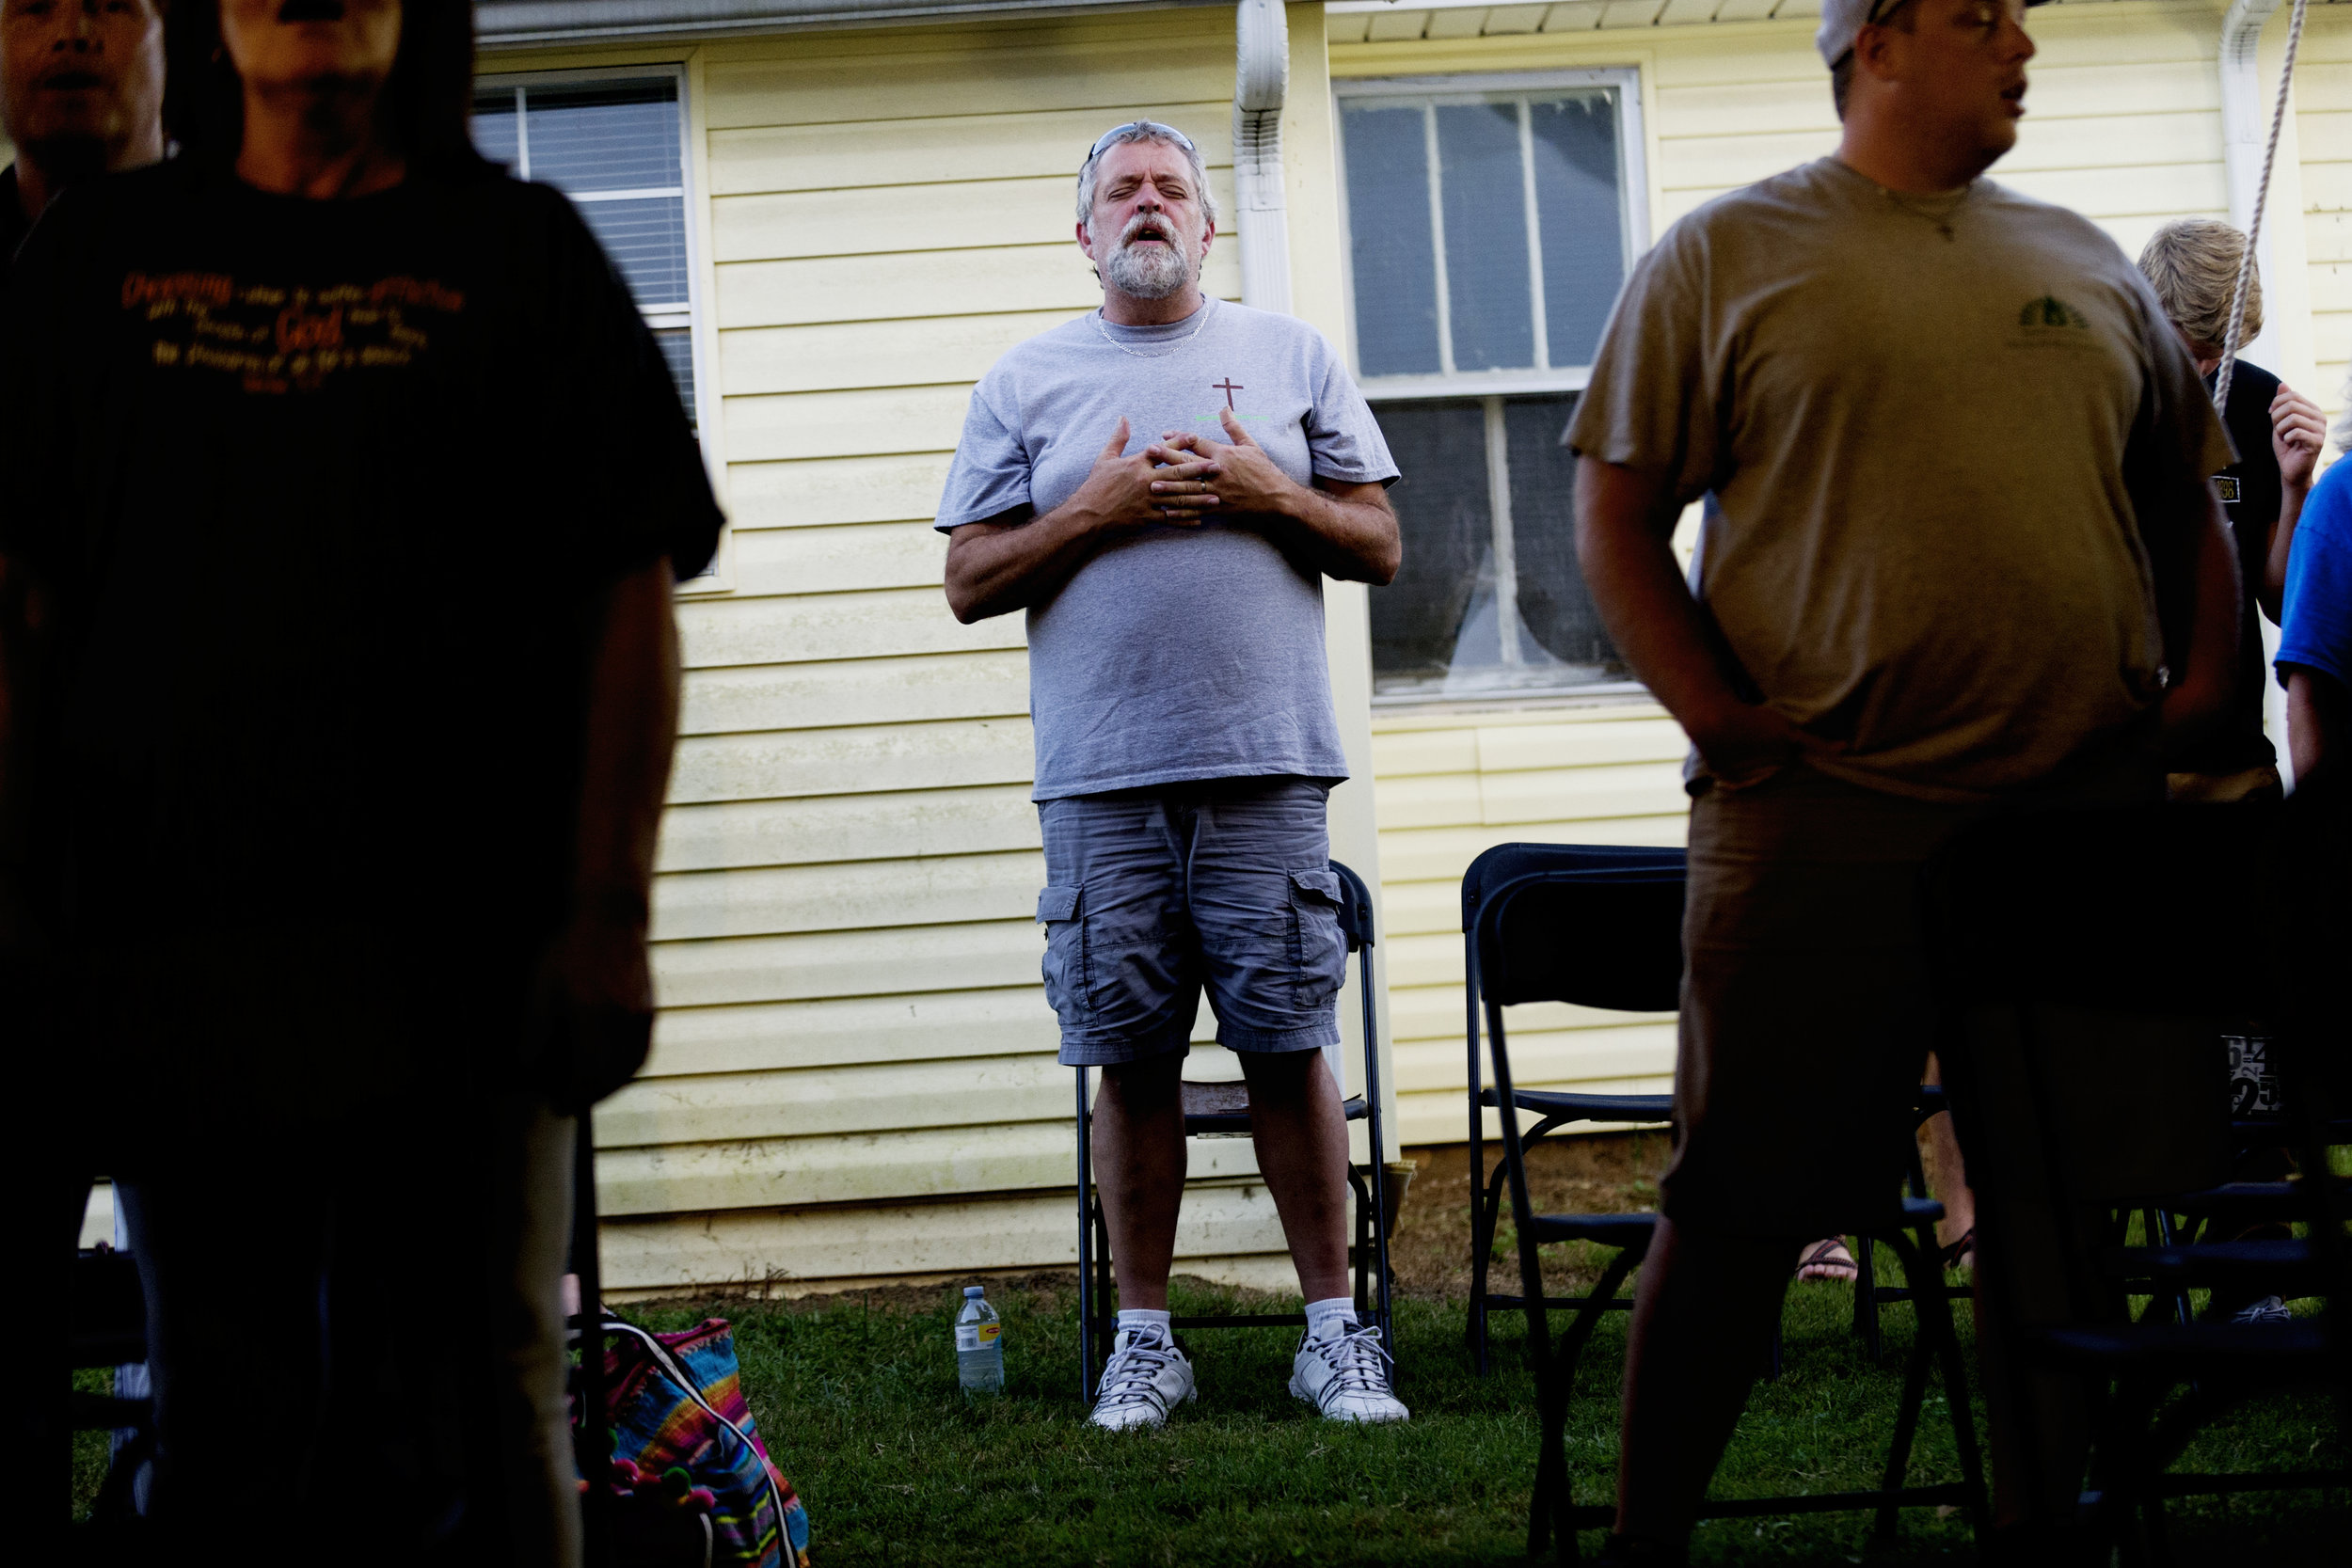 A church member sings along to a hymn during an outdoor church service at Dante Baptist Church in Knoxville, Tennessee on Wednesday, September 27, 2017.